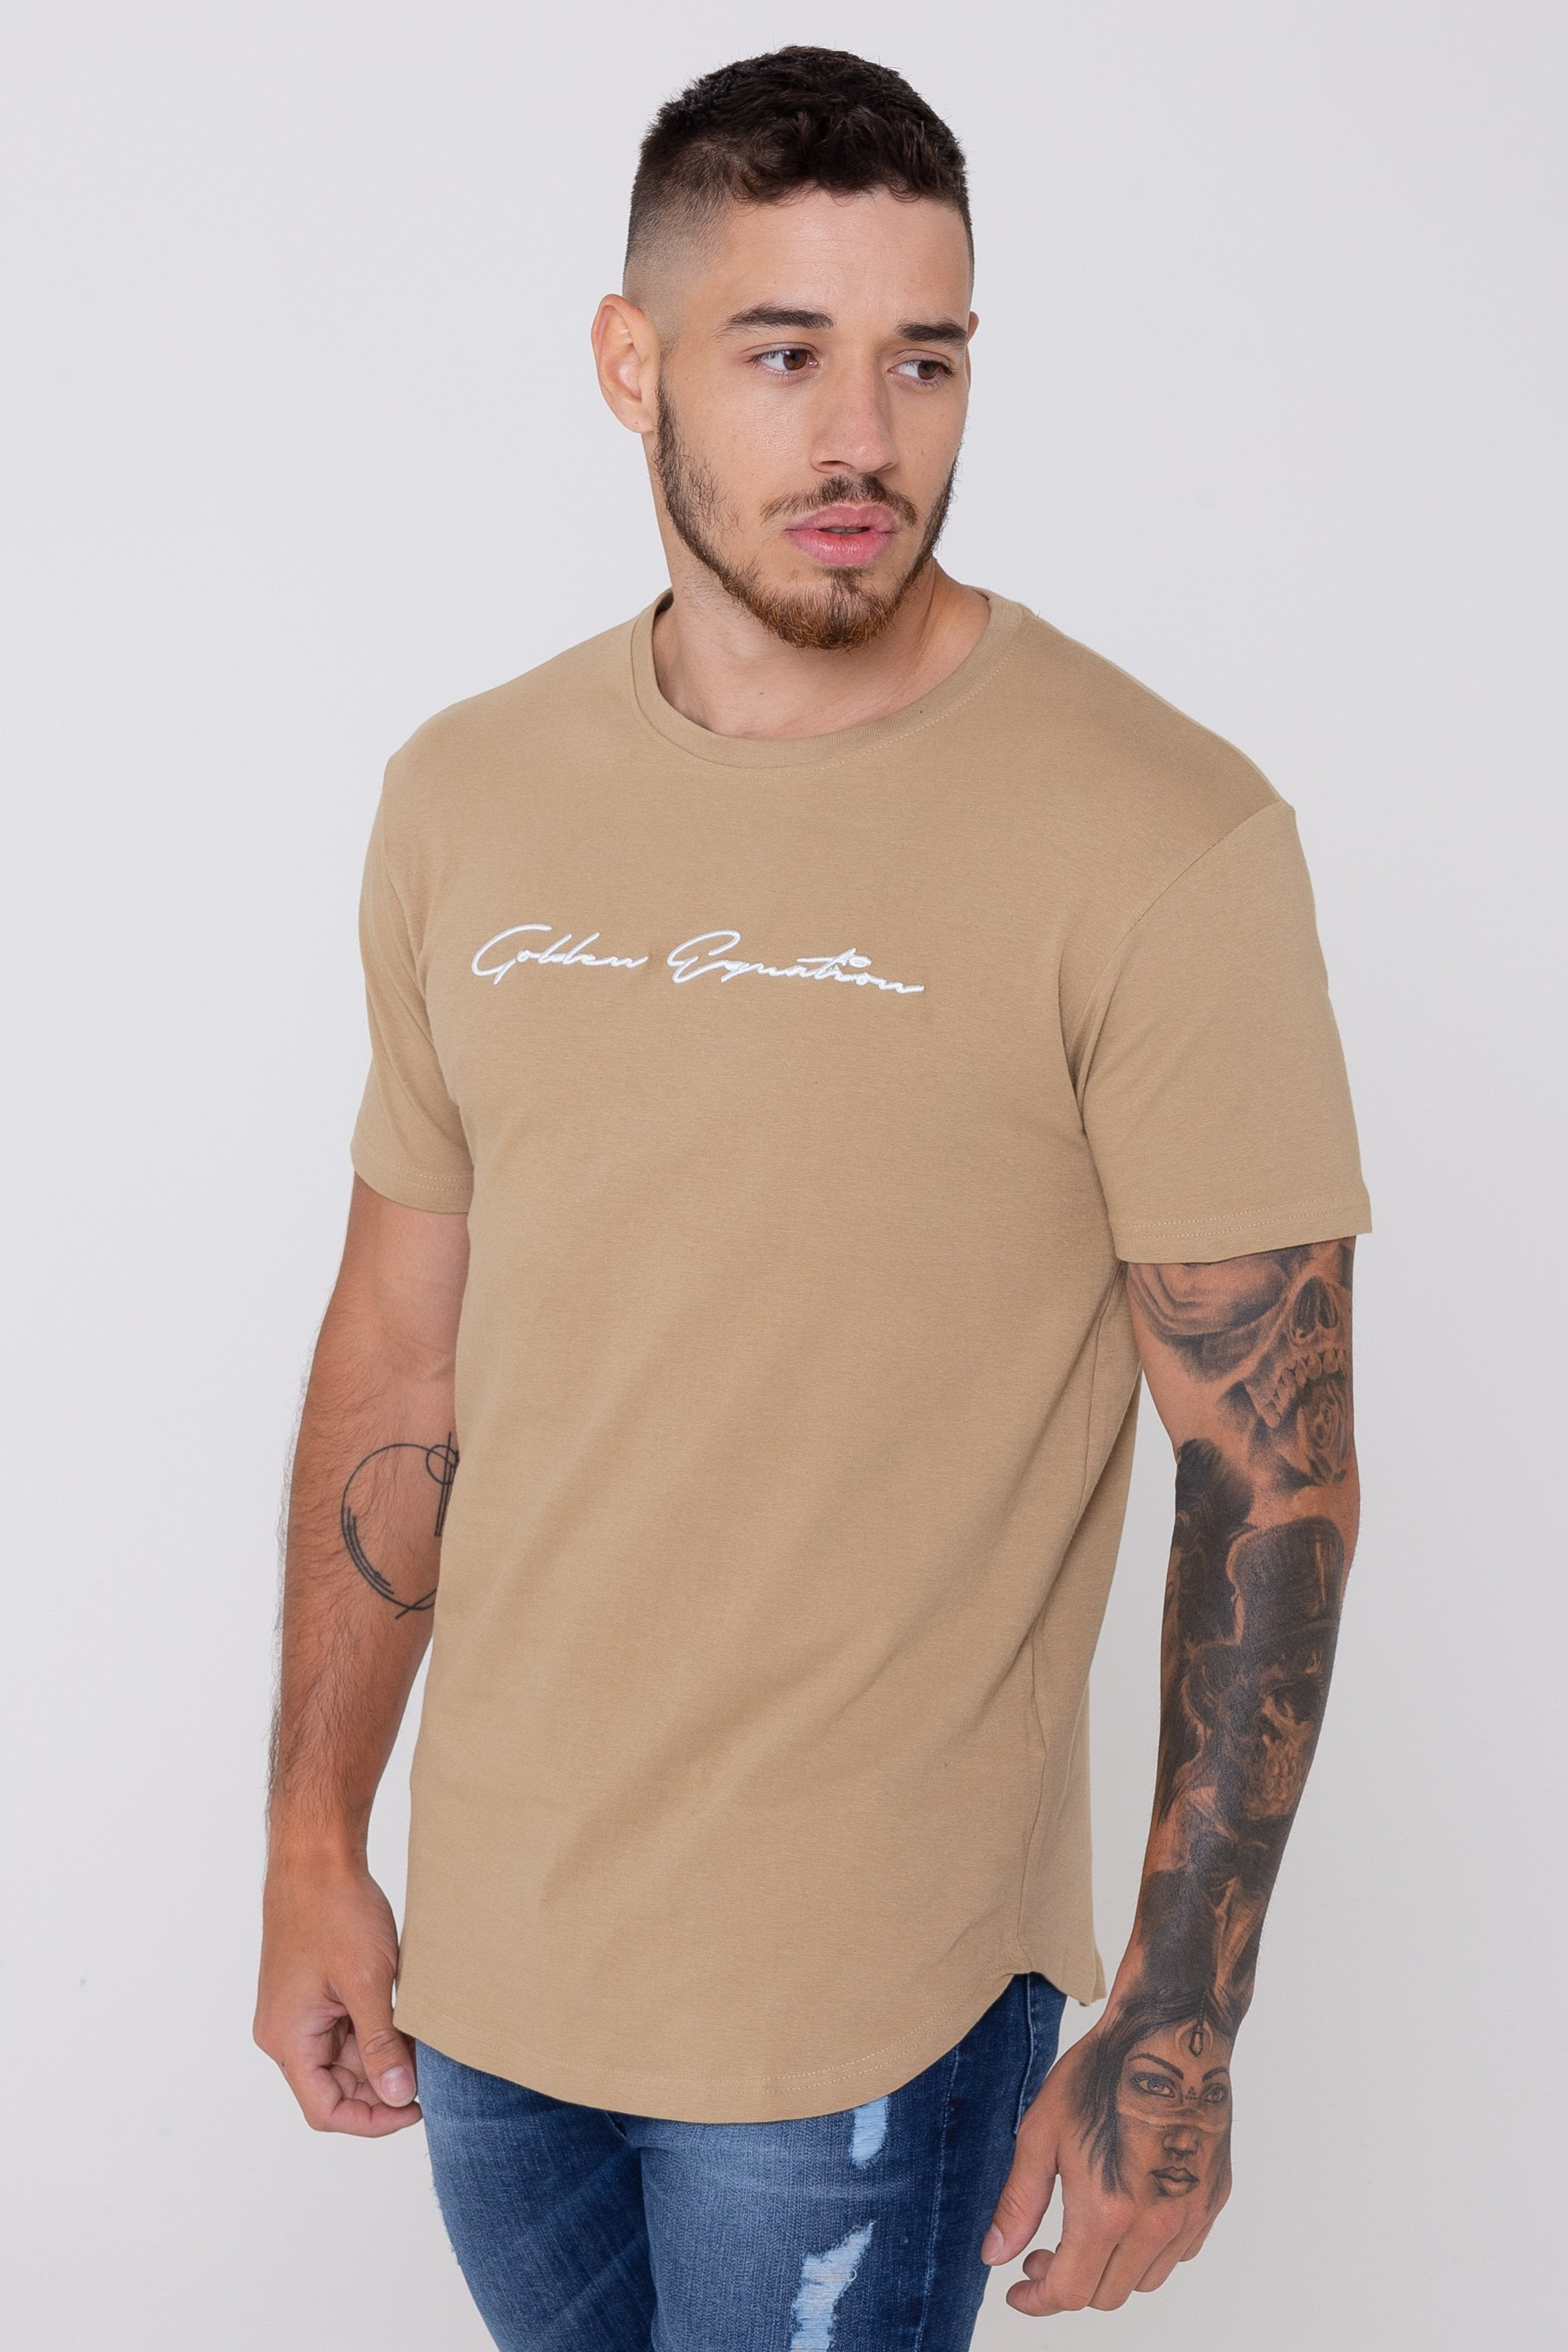 Golden Equation Signature Longline Men's T-Shirt - Stone, Small